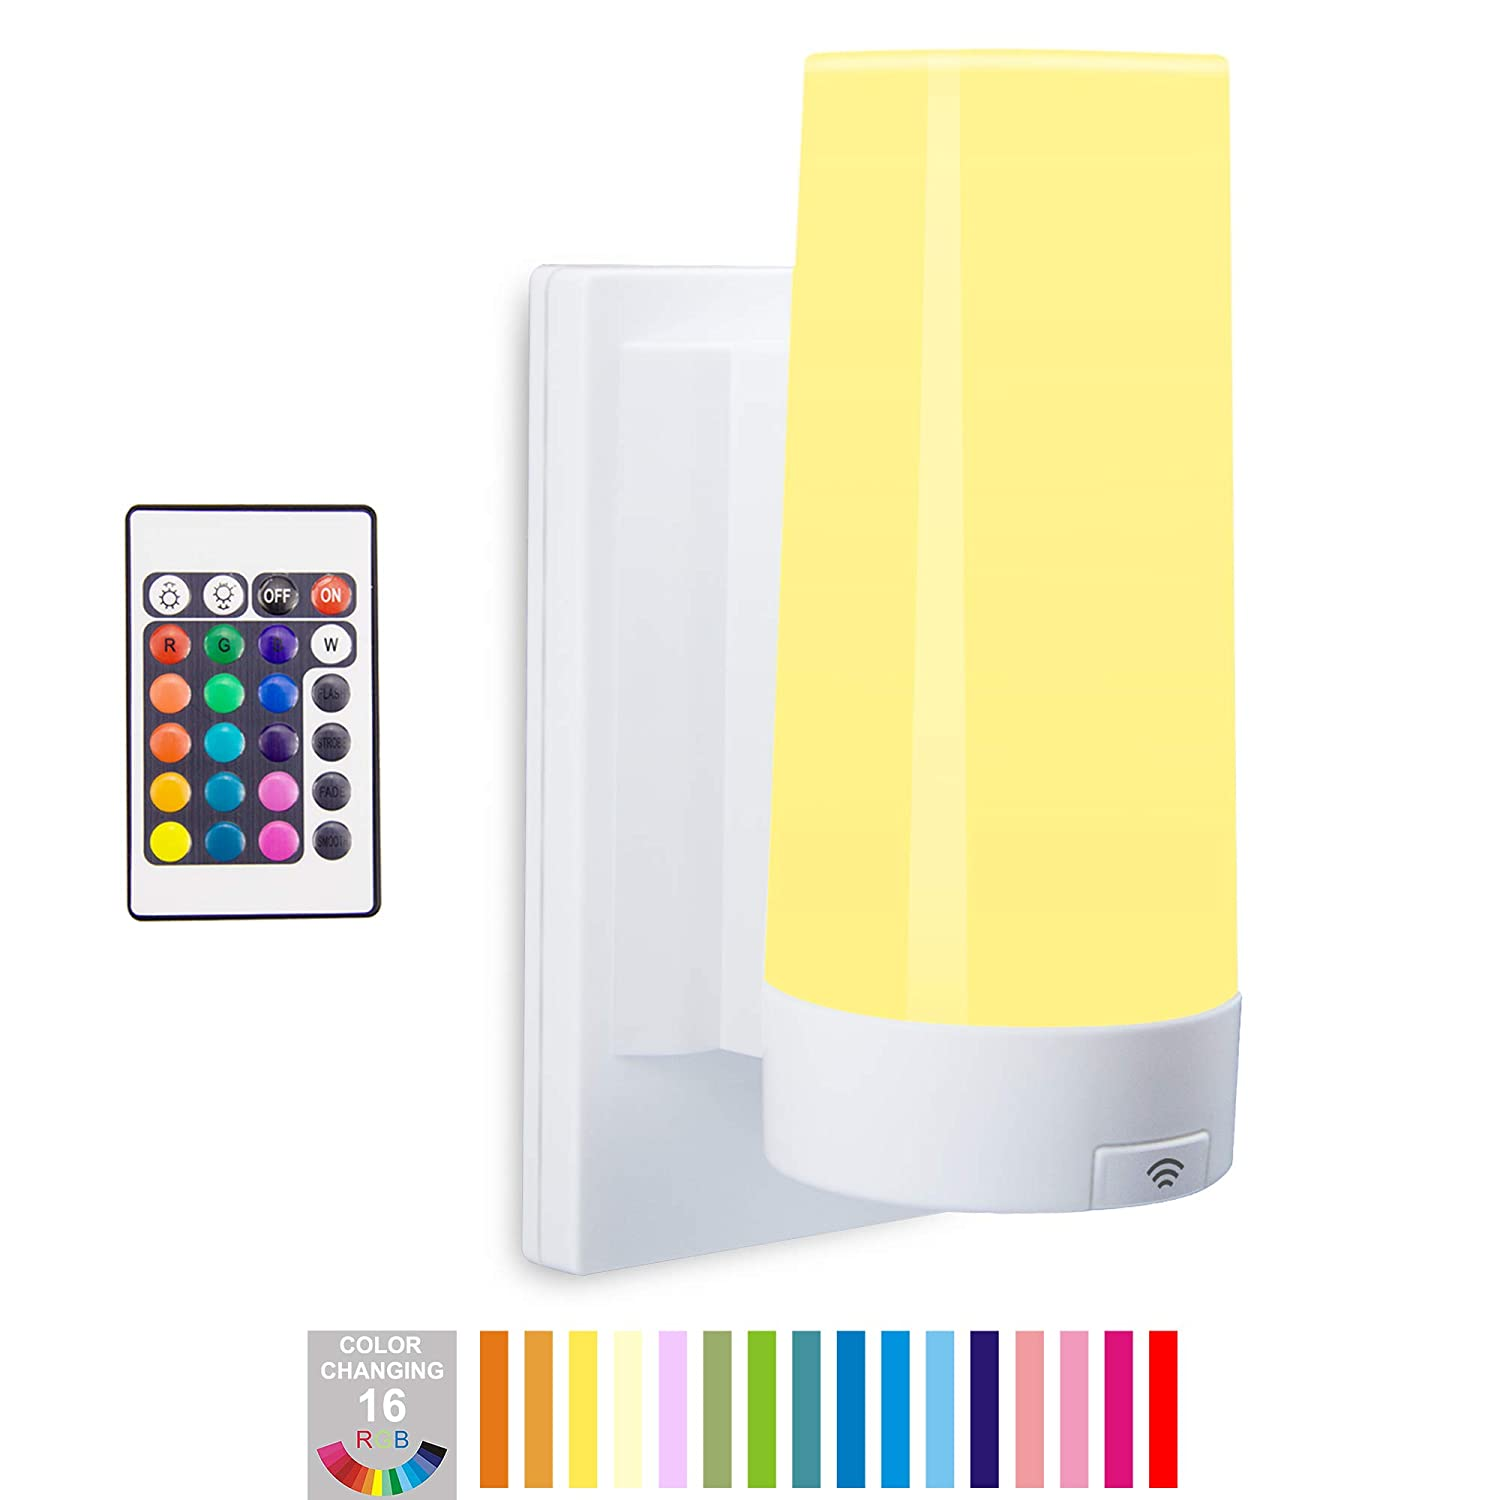 BIGLIGHT Wireless Battery Operated Bright LED Wall Sconce Light, 16 Color Changing, Remote Controlled, Dimmable, RGB Stick on Lamp for Hallway Bathroom Bedside Hall Kids Bedroom Corridor Mood Lighting